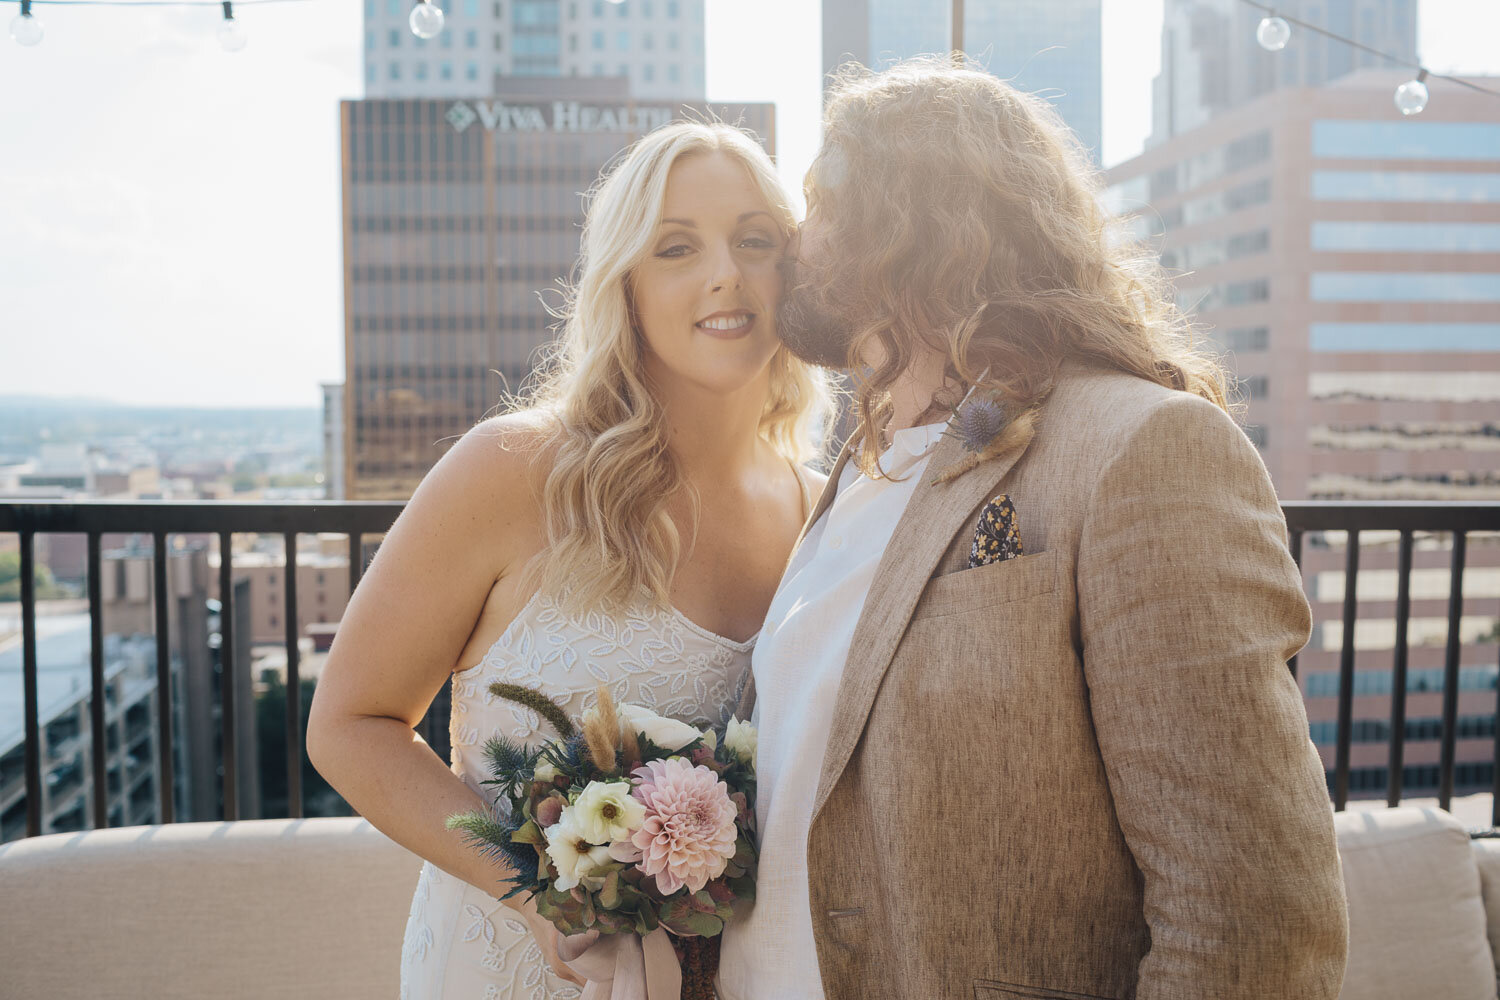 Birmingham Alabama Wedding Photography at The Redmont Hotel by David A. Smith of DSmithImages Wedding Photography, Portraits, and Events